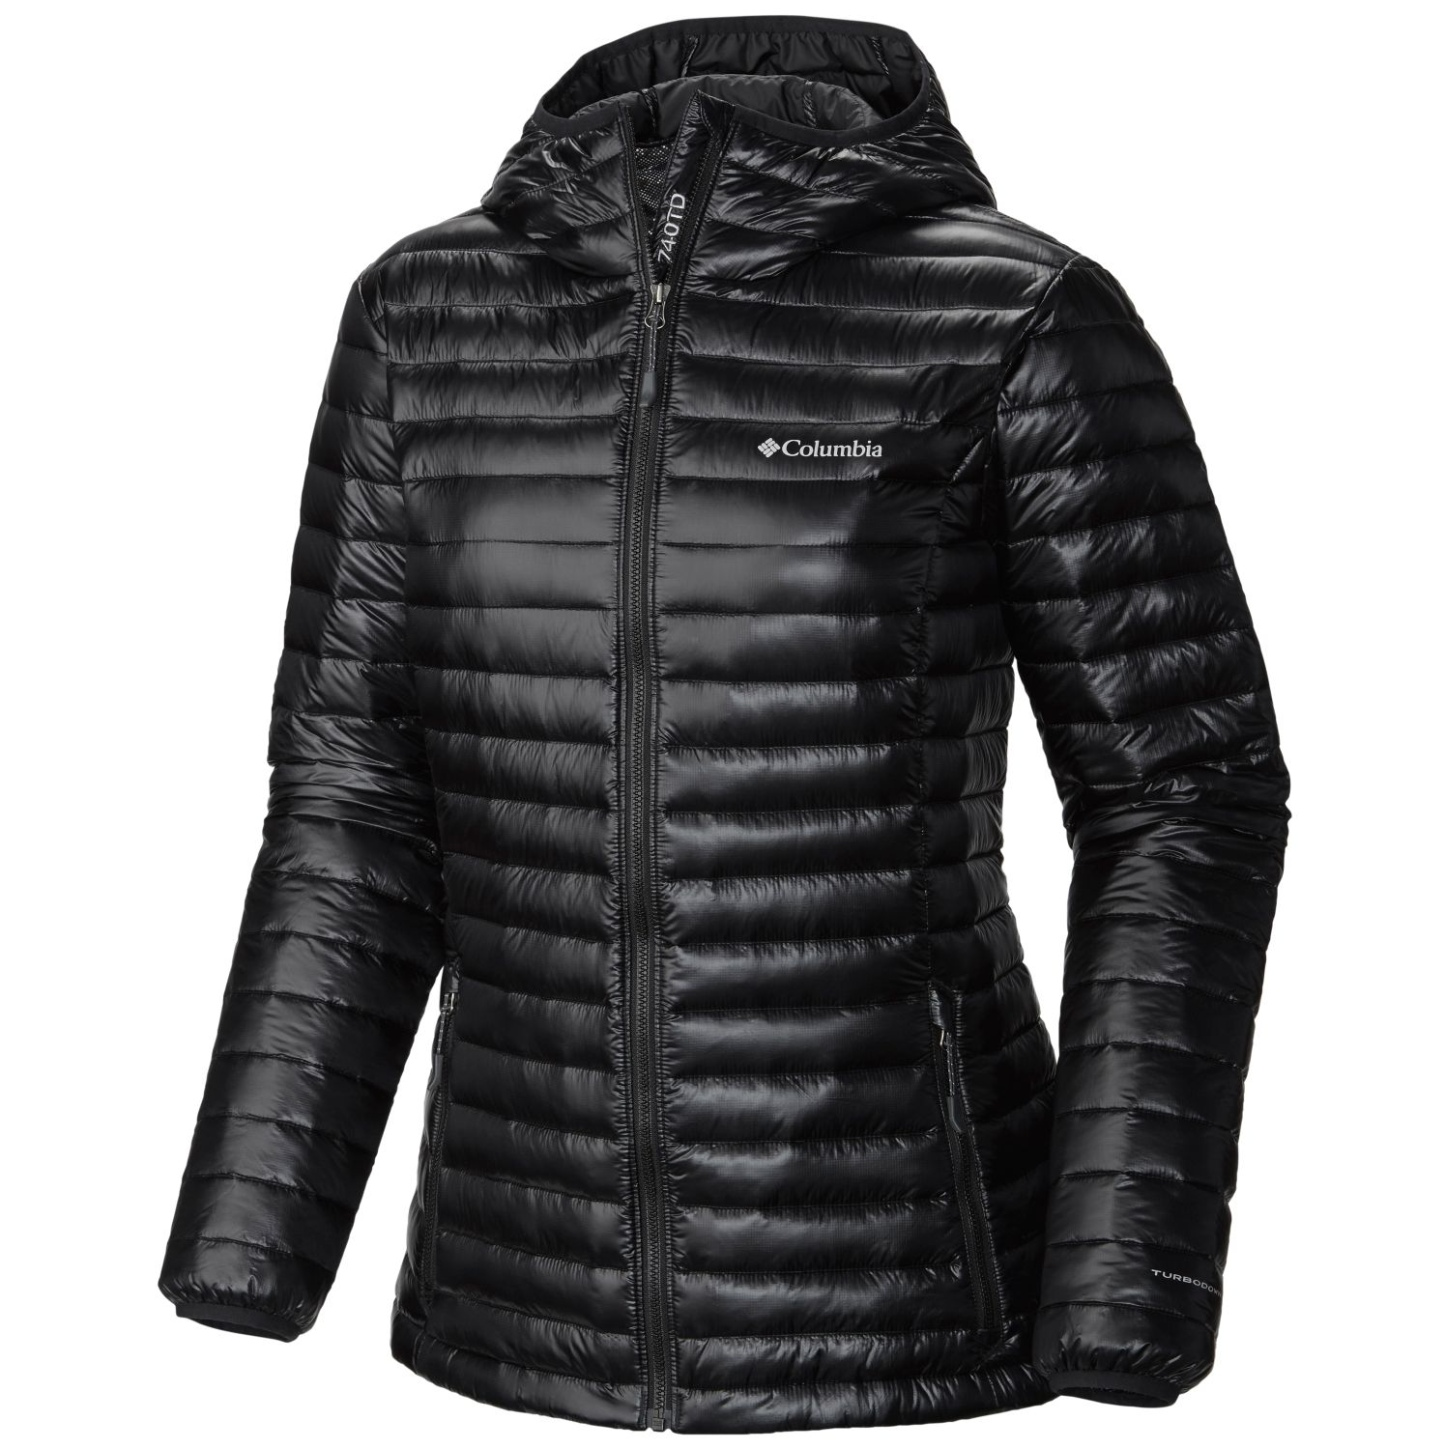 Columbia Platinum Plus 740 TurboDown Jacke mit Kapuze für Damen Black-30